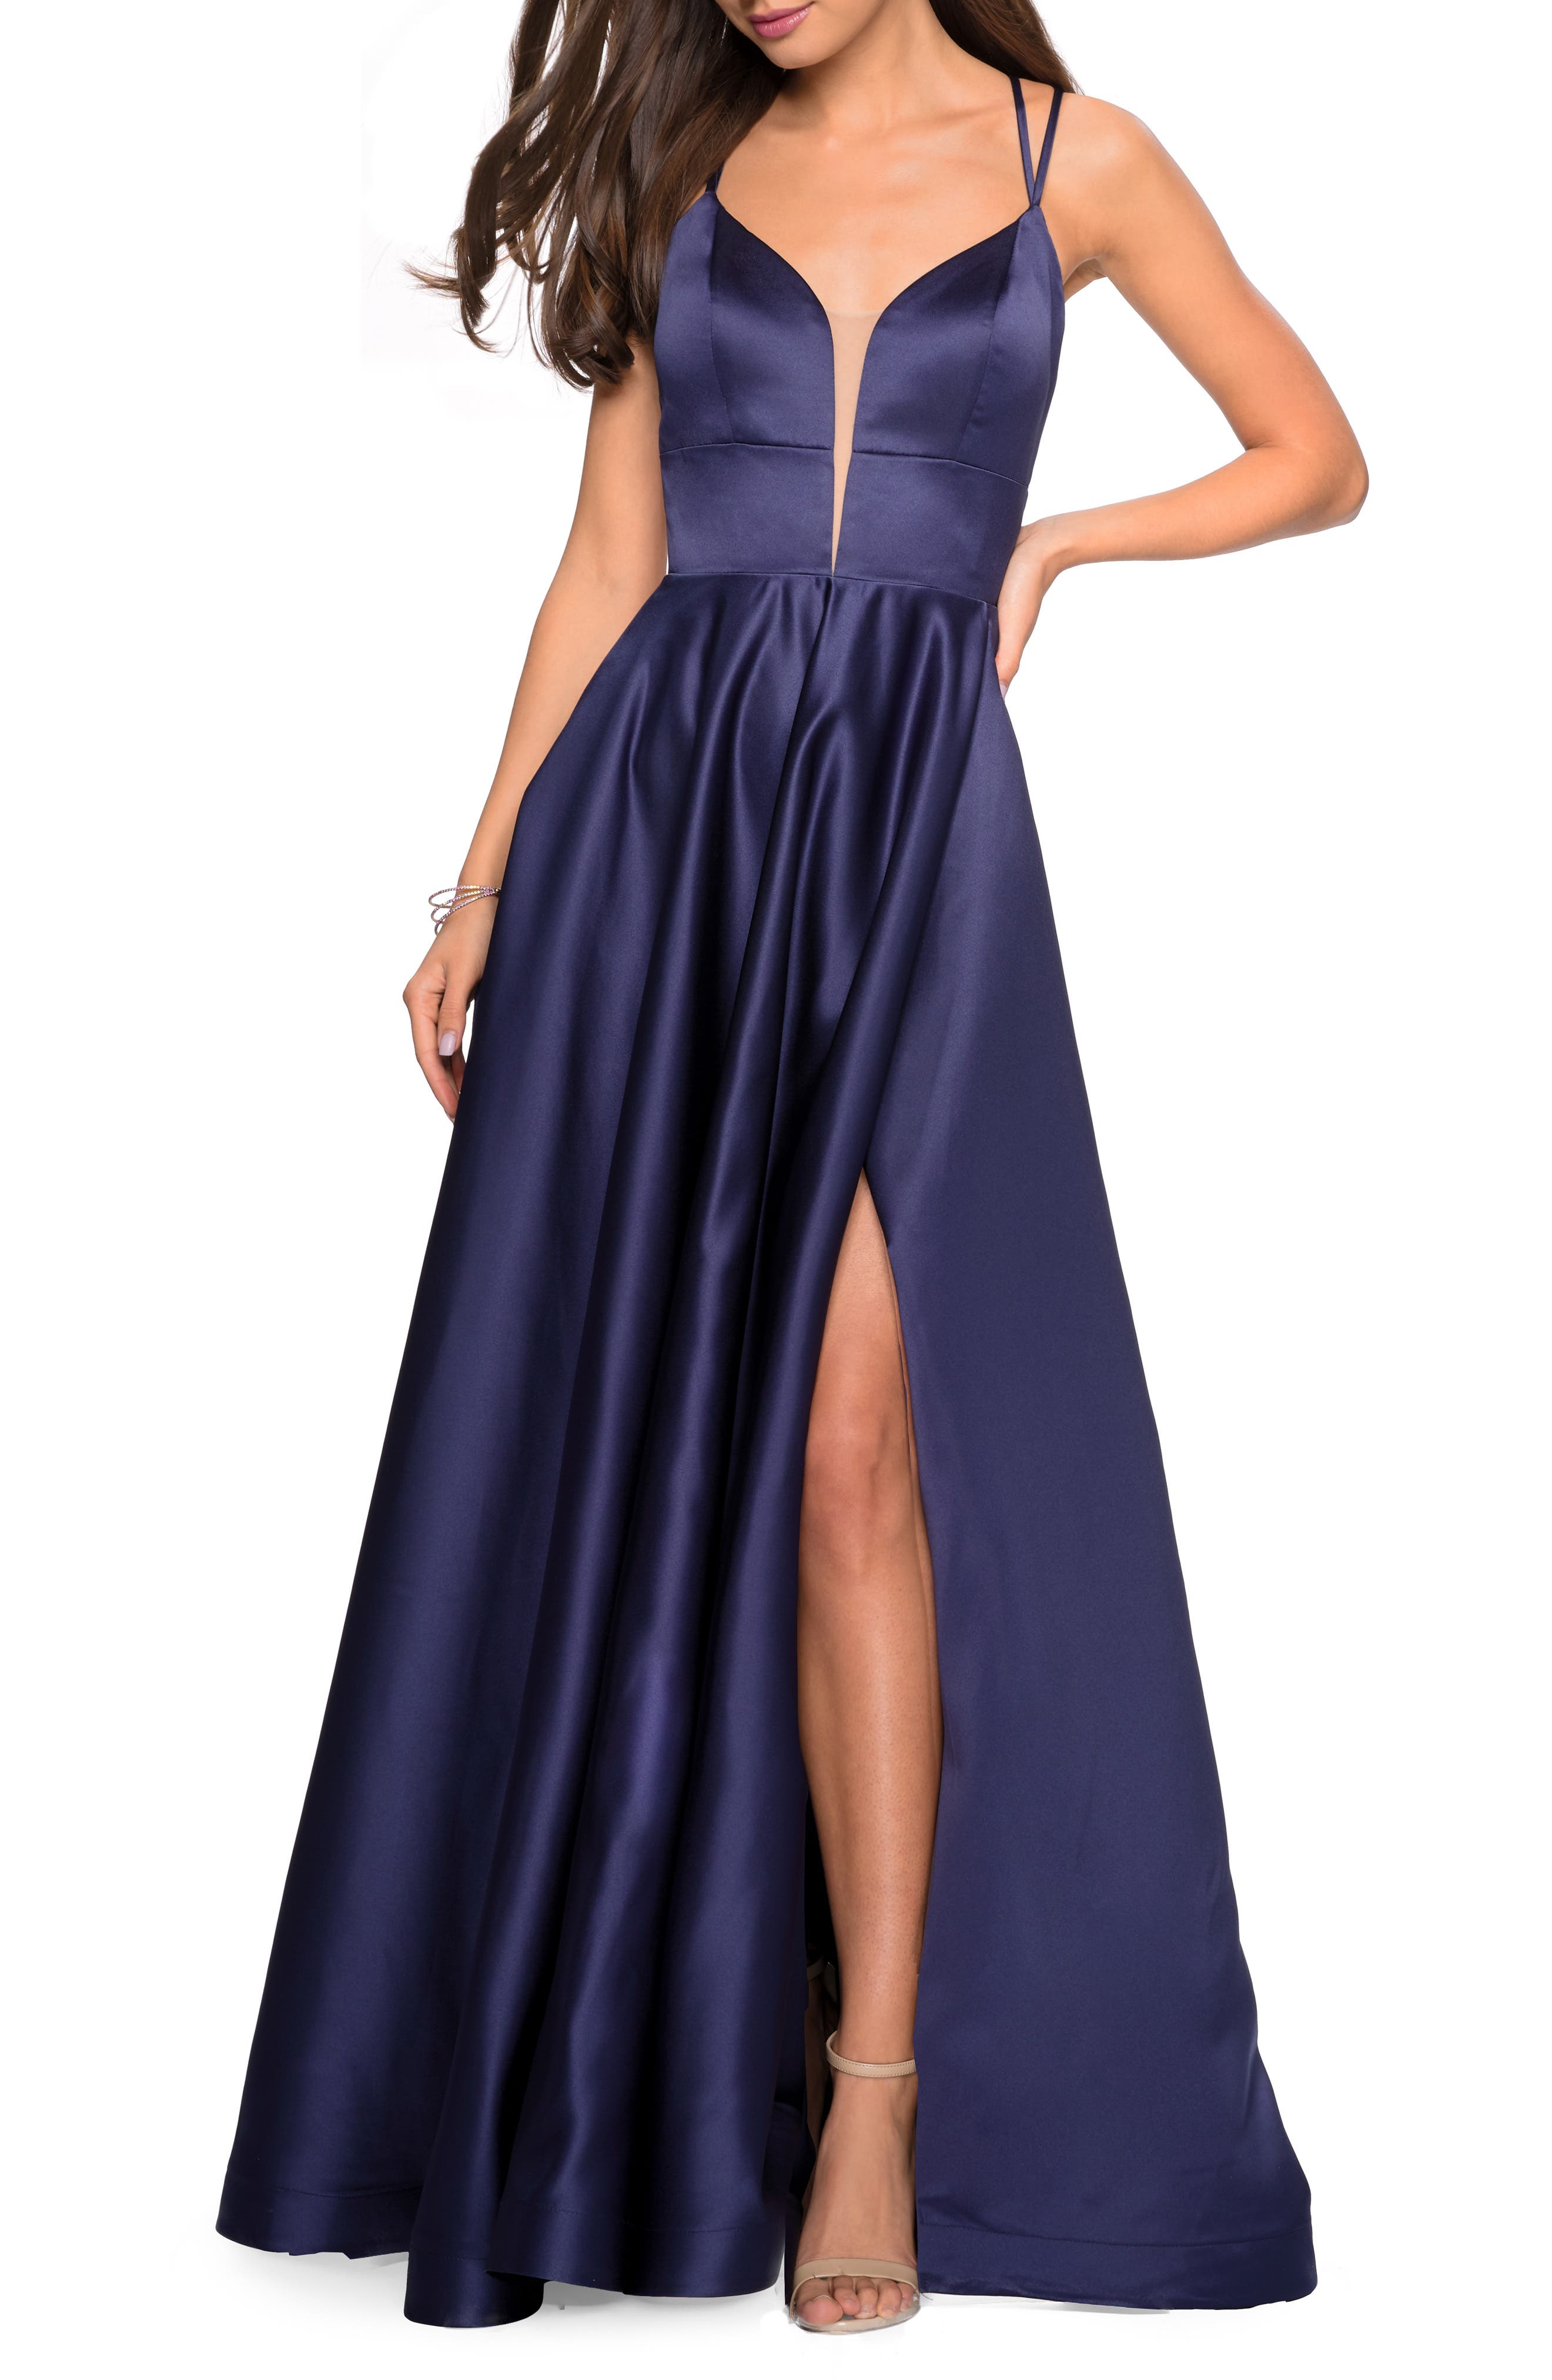 La Femme Strappy Back Satin Evening Dress, Blue